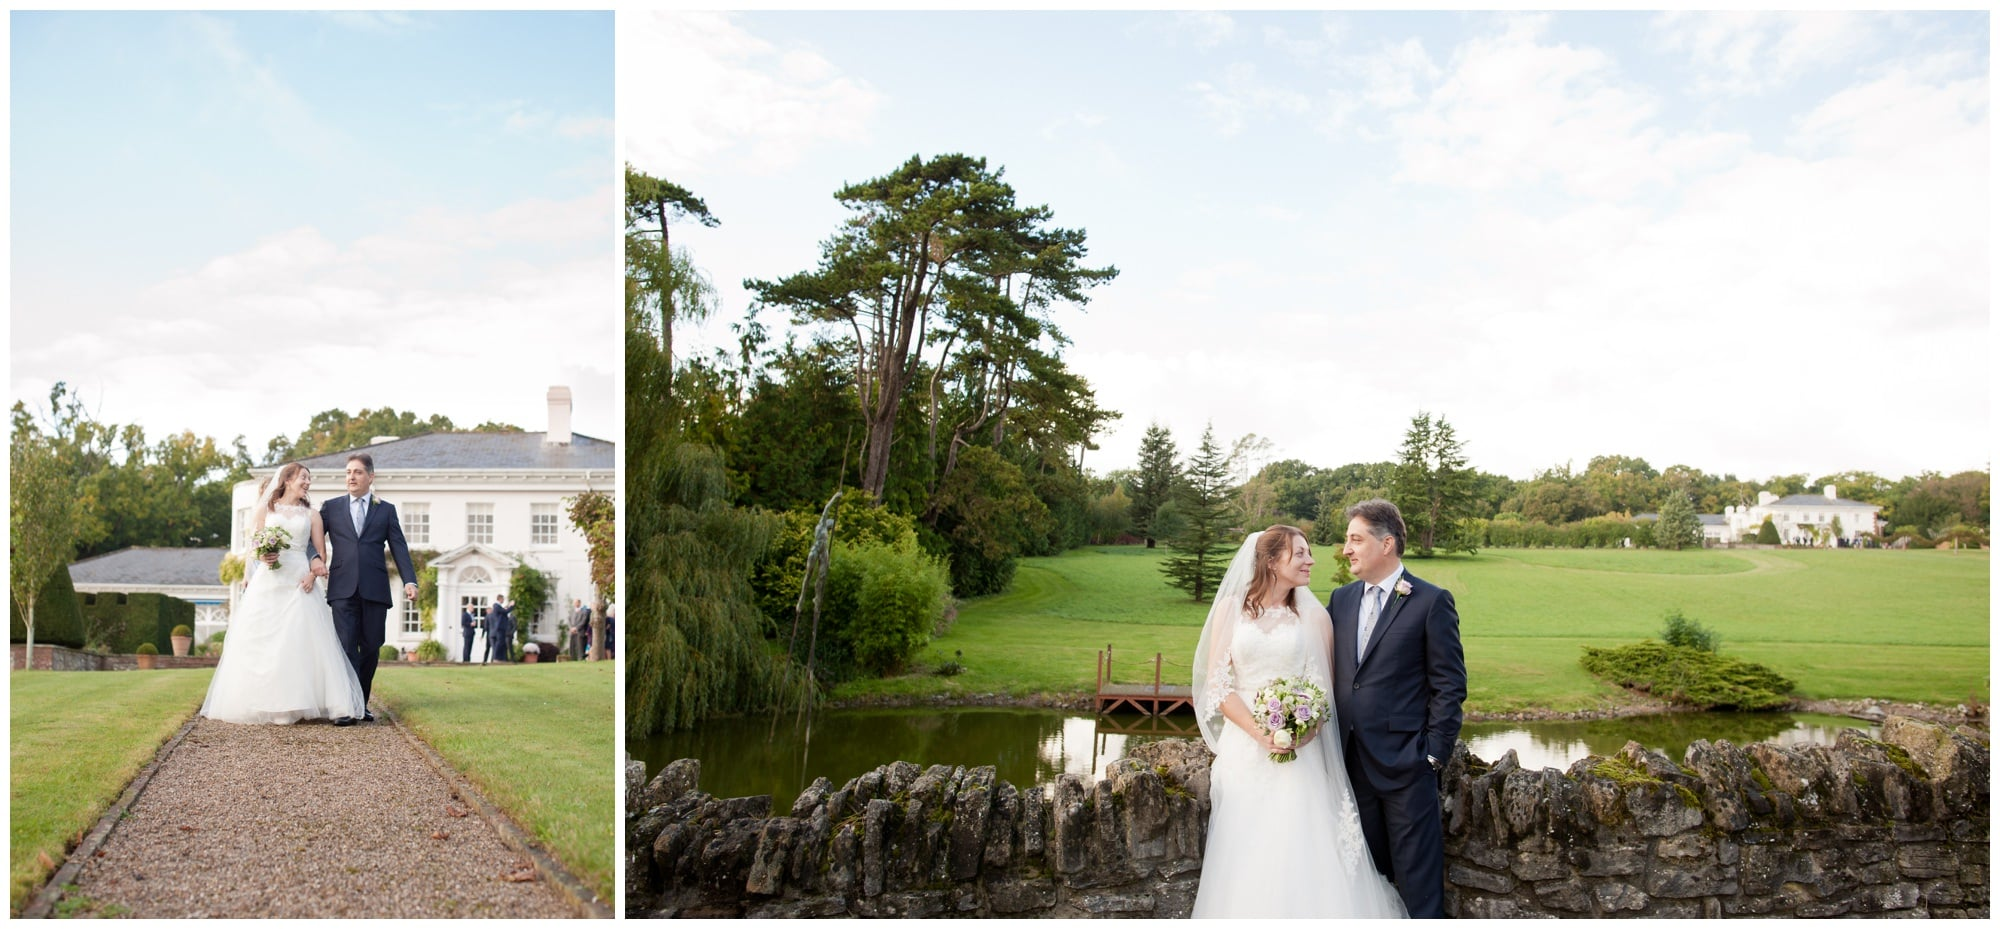 Bride and Groom at Roundwood Estate